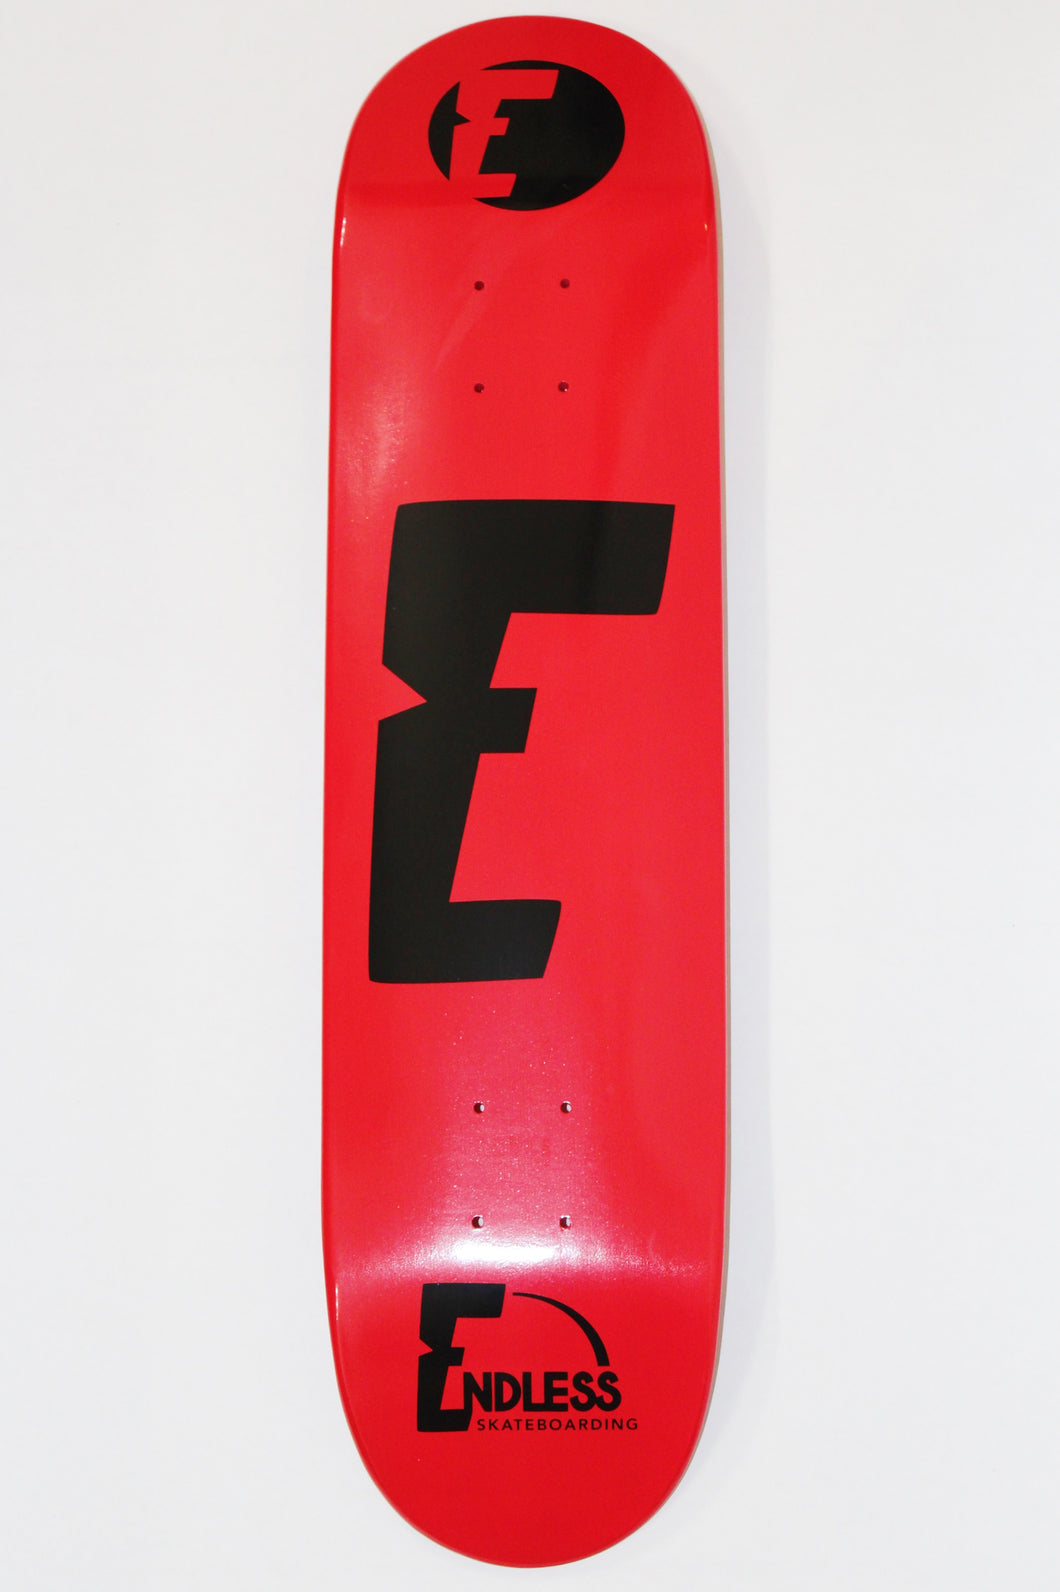 Endless Skateboarding Red Deck